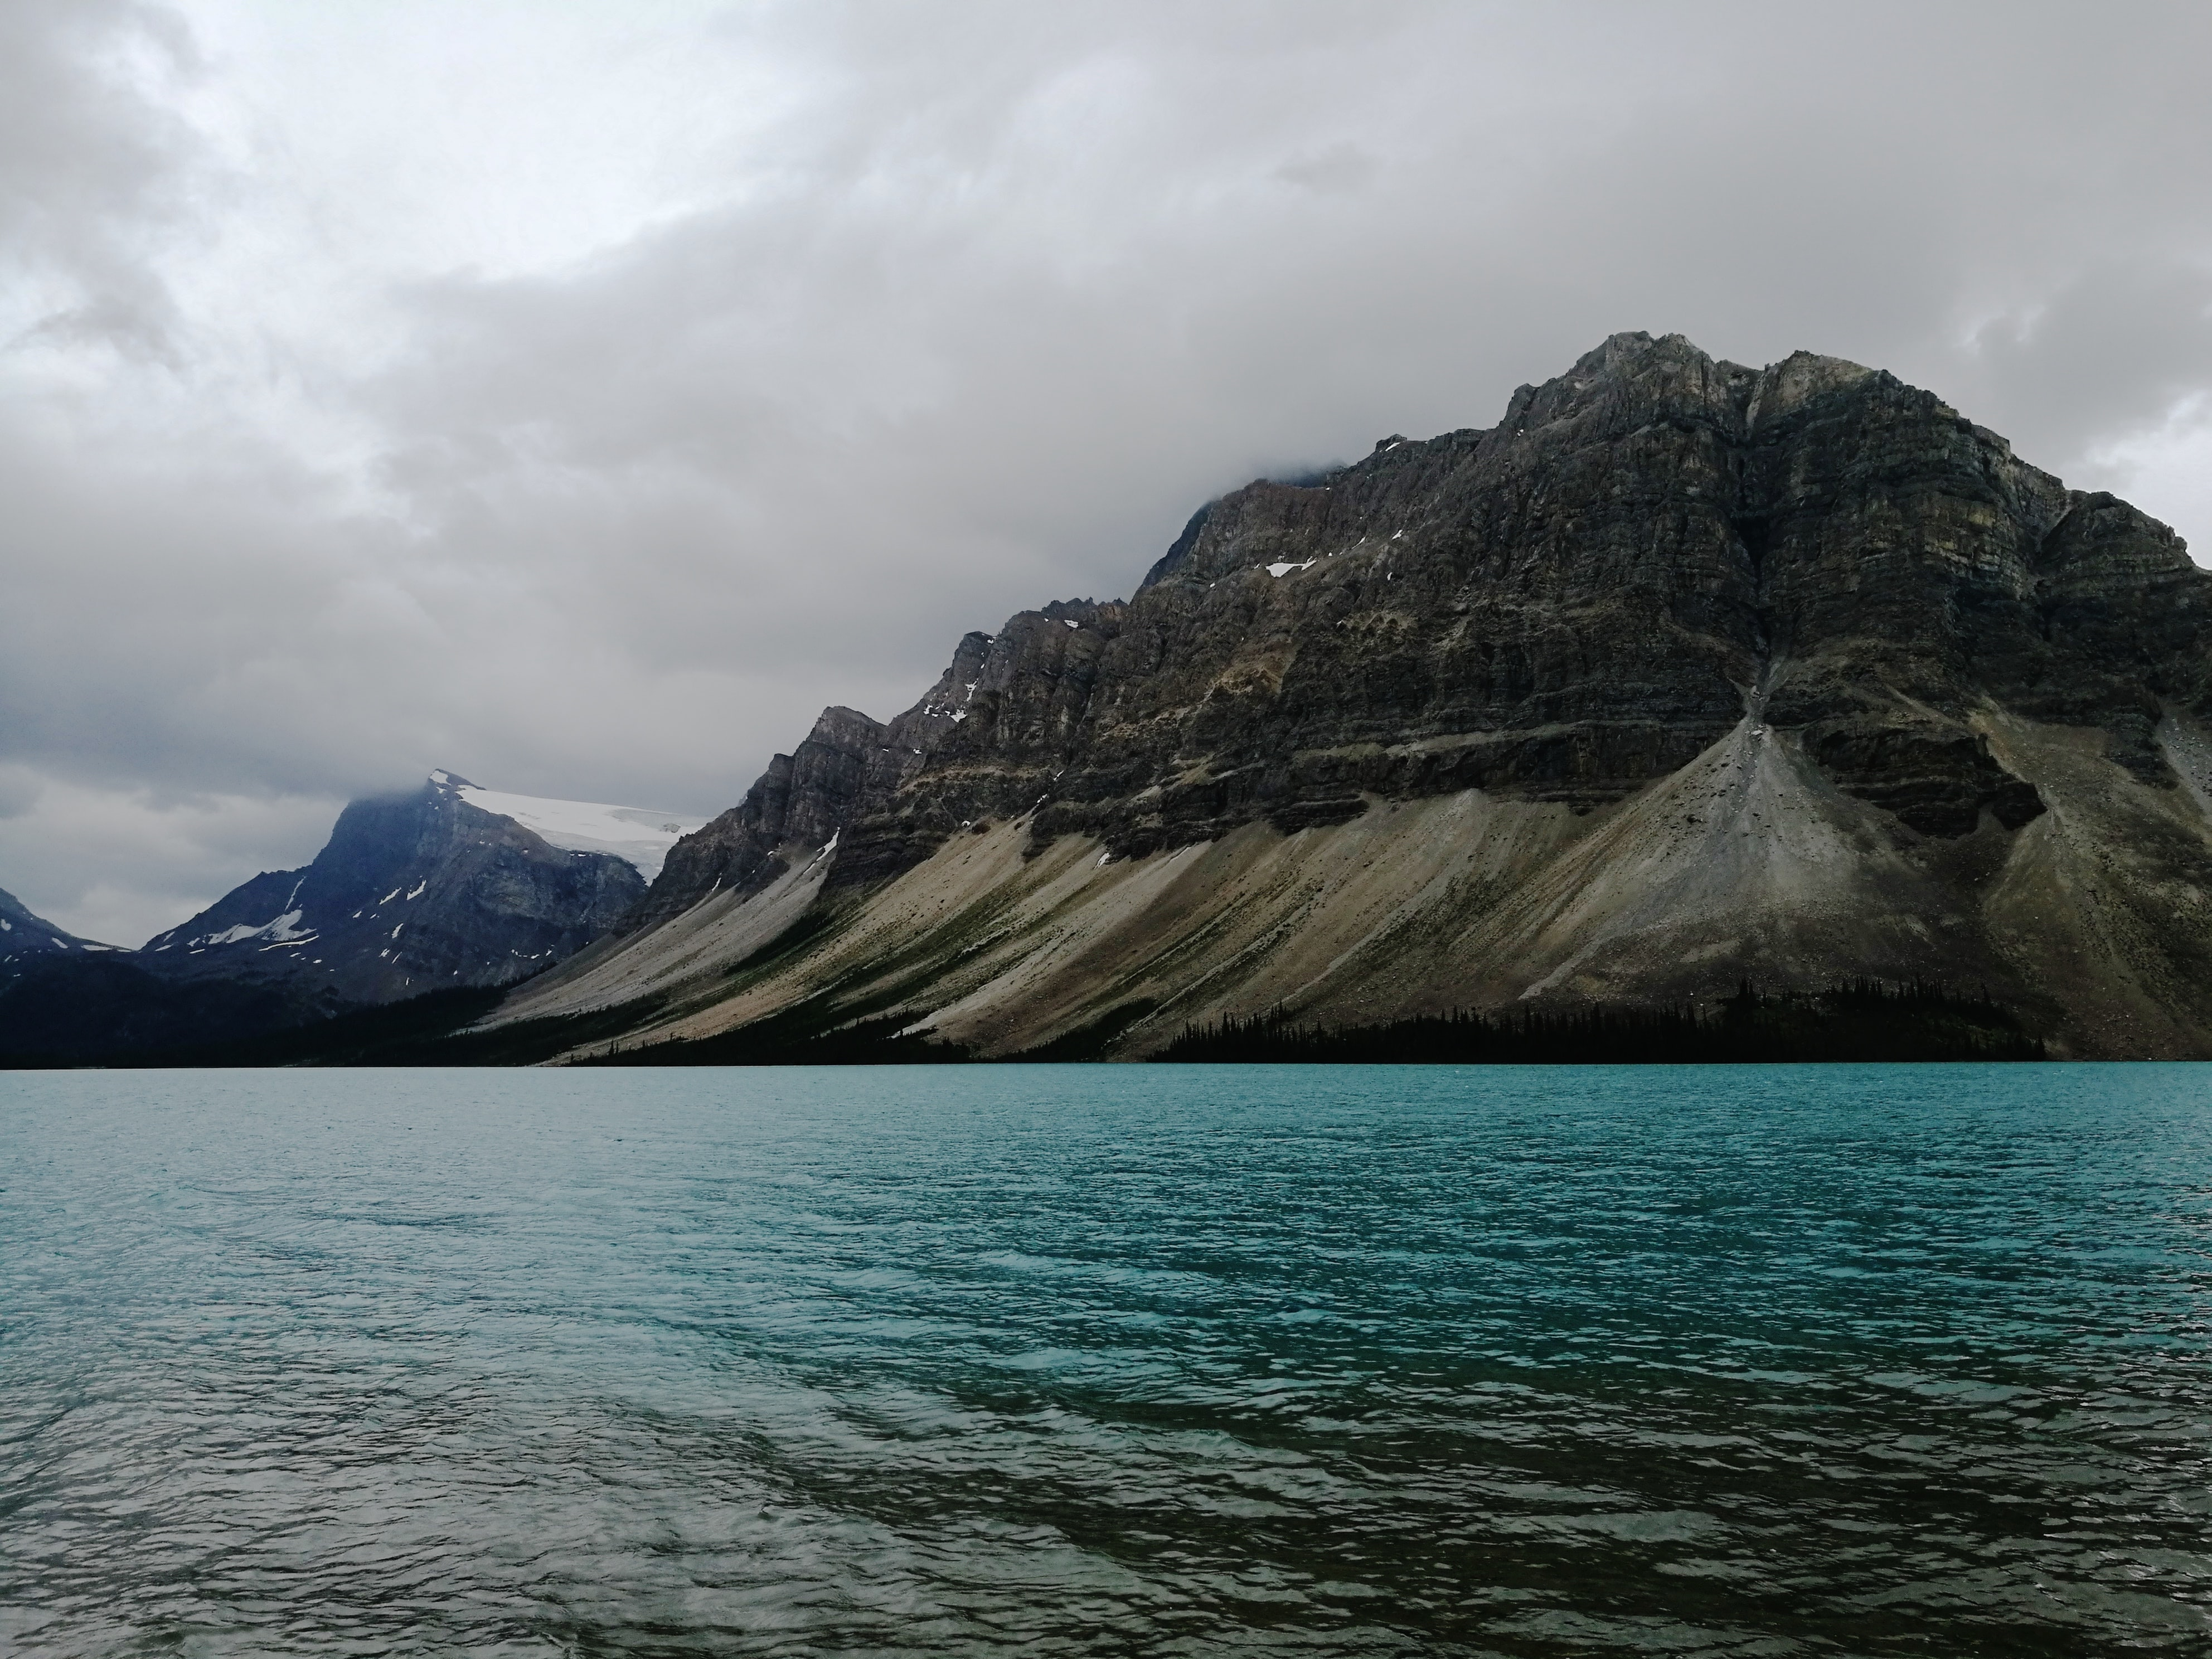 black and brown rocky mountain beside body of water under cloudy sky